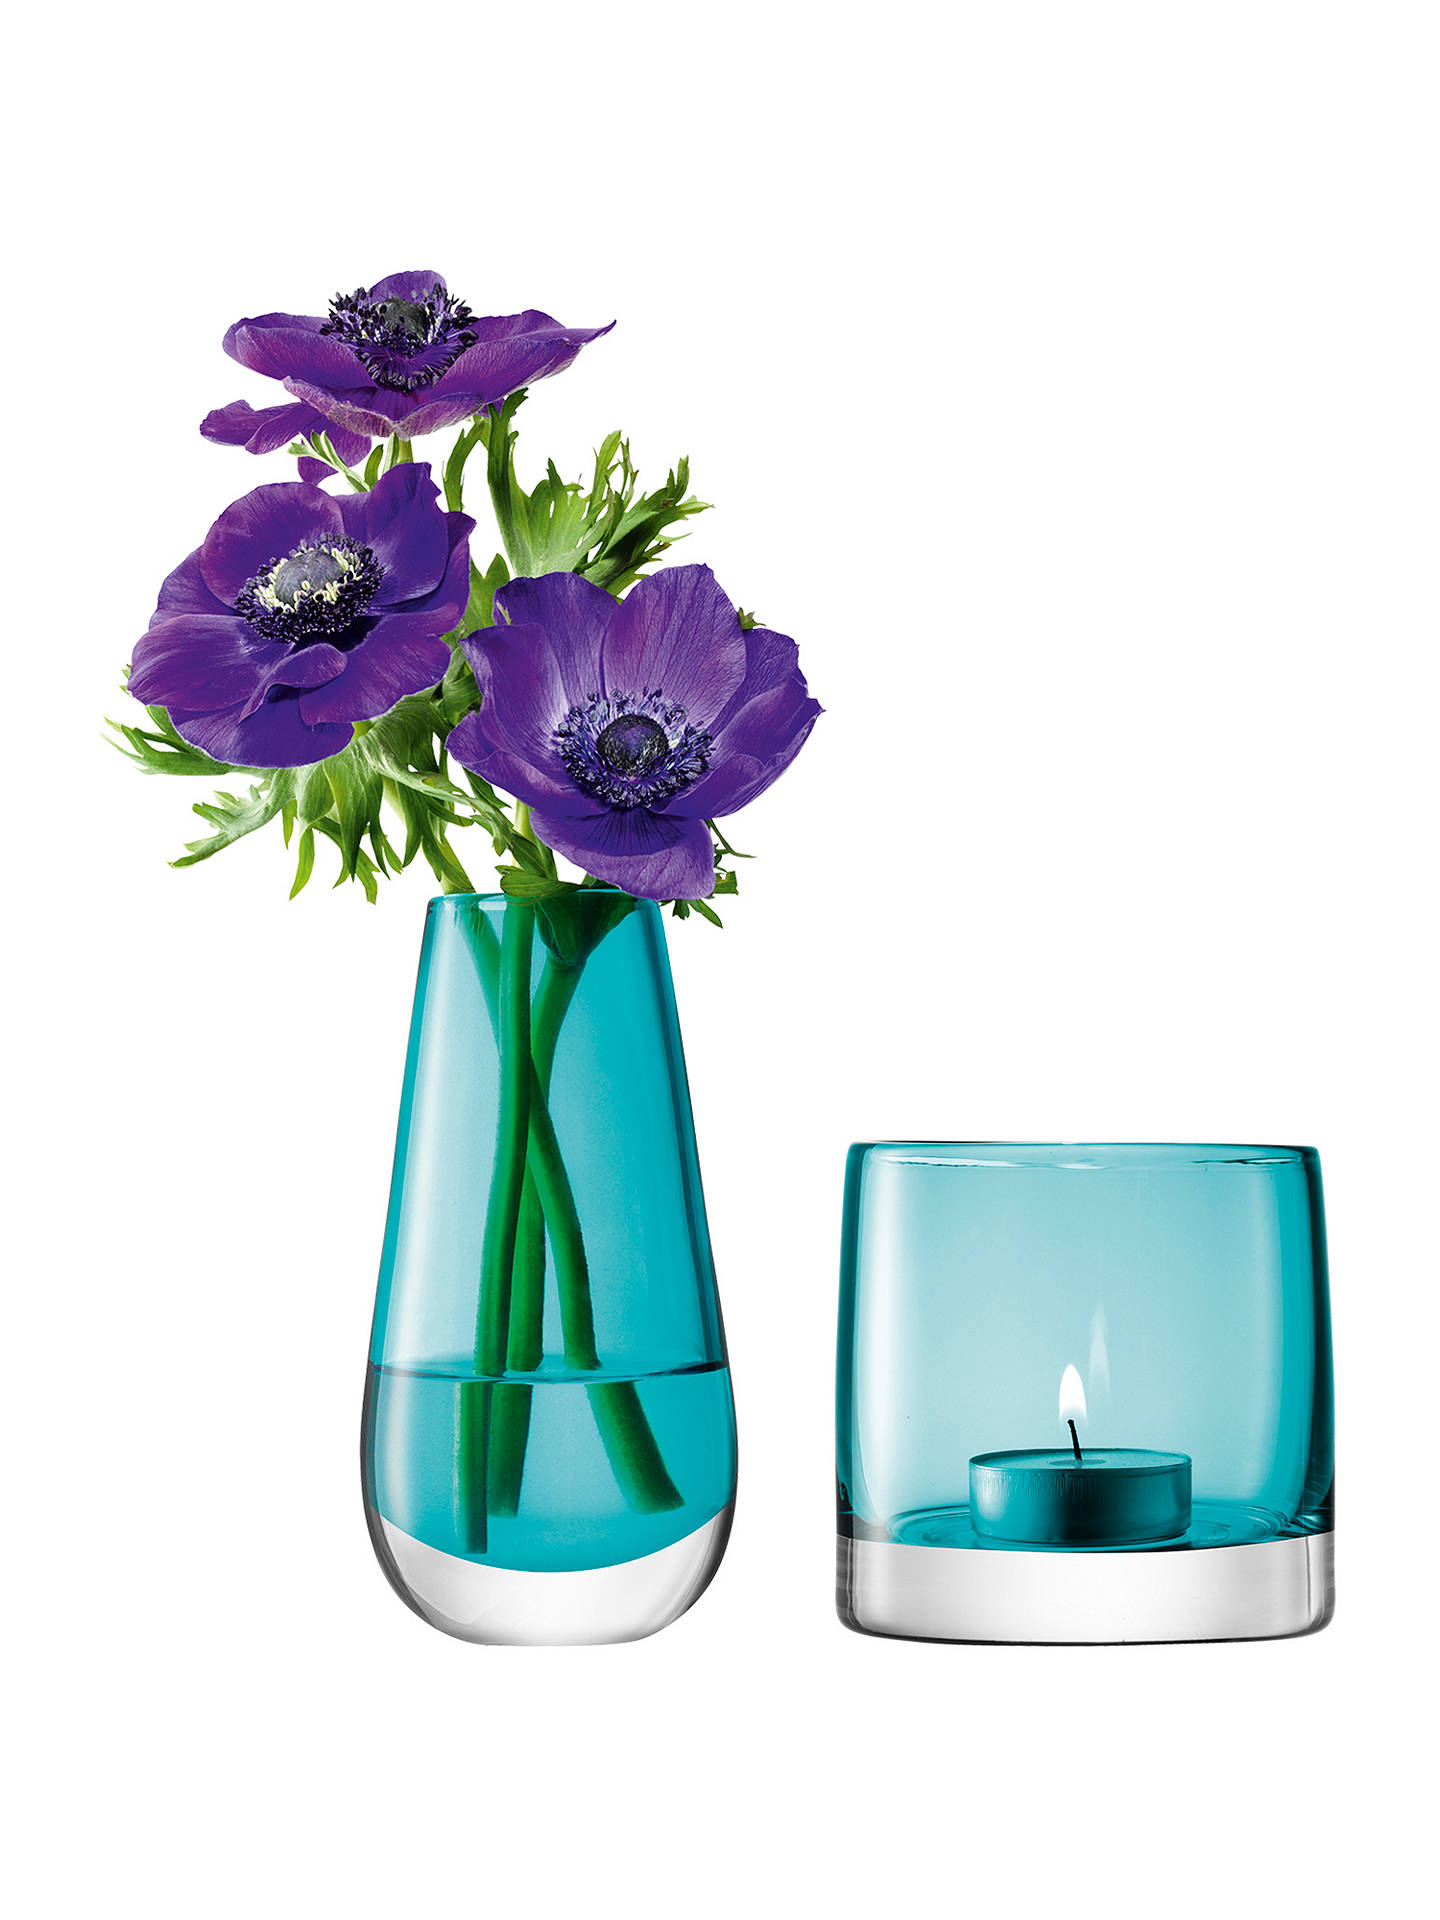 Buy LSA International Flower Bud Vase and Tealight Holder, Peacock Online at johnlewis.com